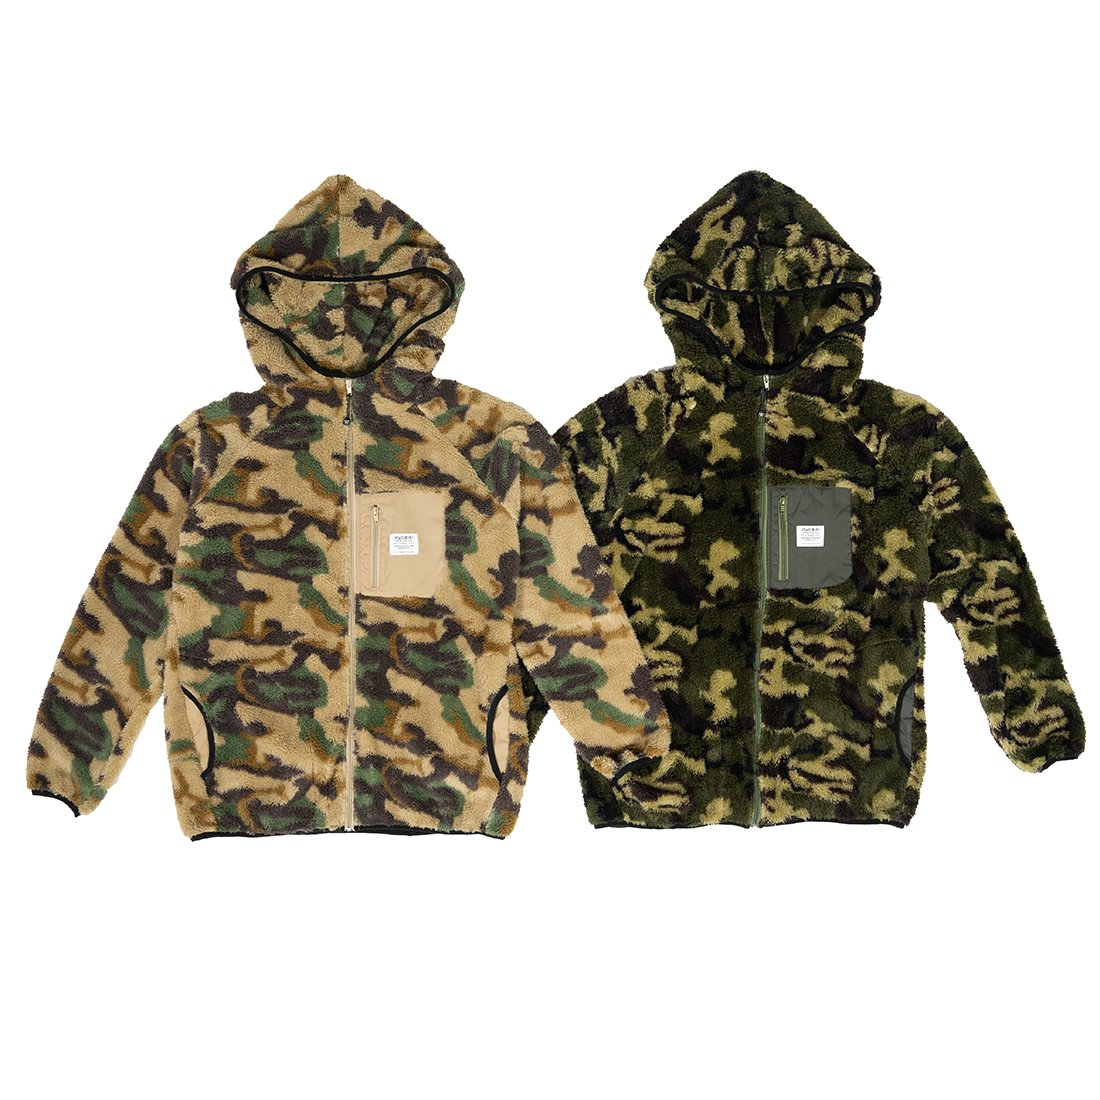 CAPTAINS HELM #CAMO FLEECE HOOD JACKET